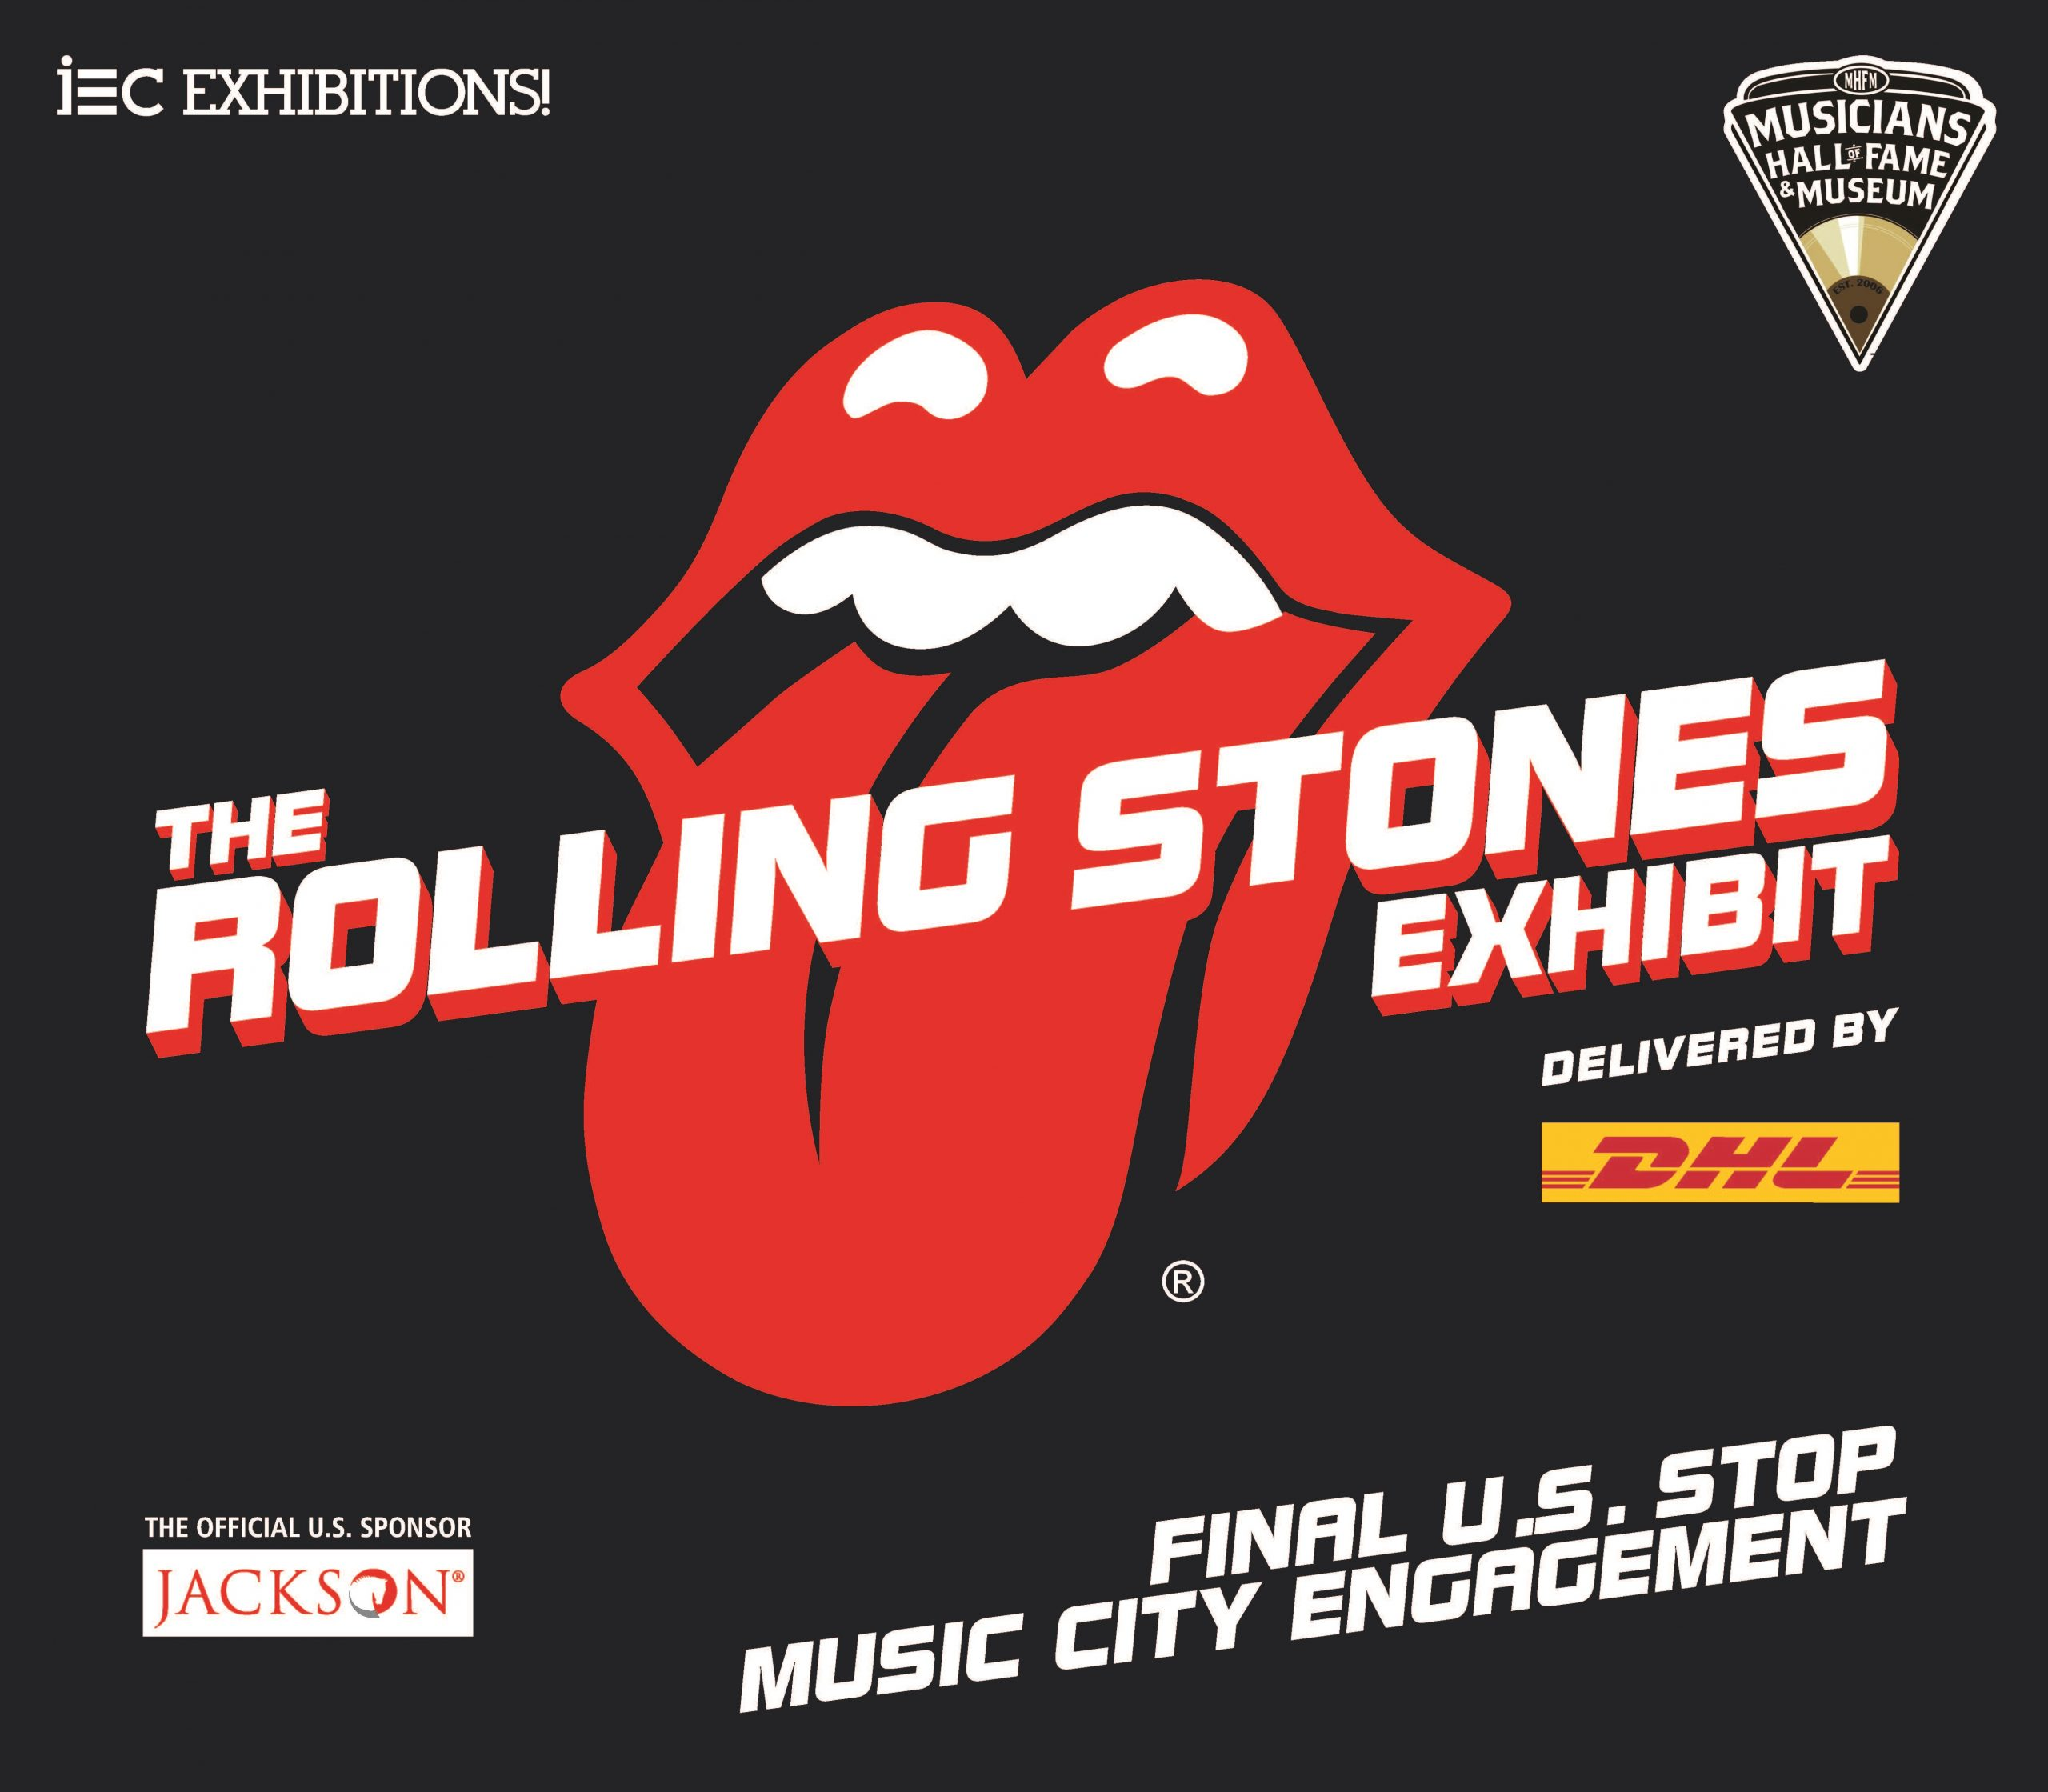 Sculptures of The Rolling Stones 'Tongue and Lips' Logo Invade Music City